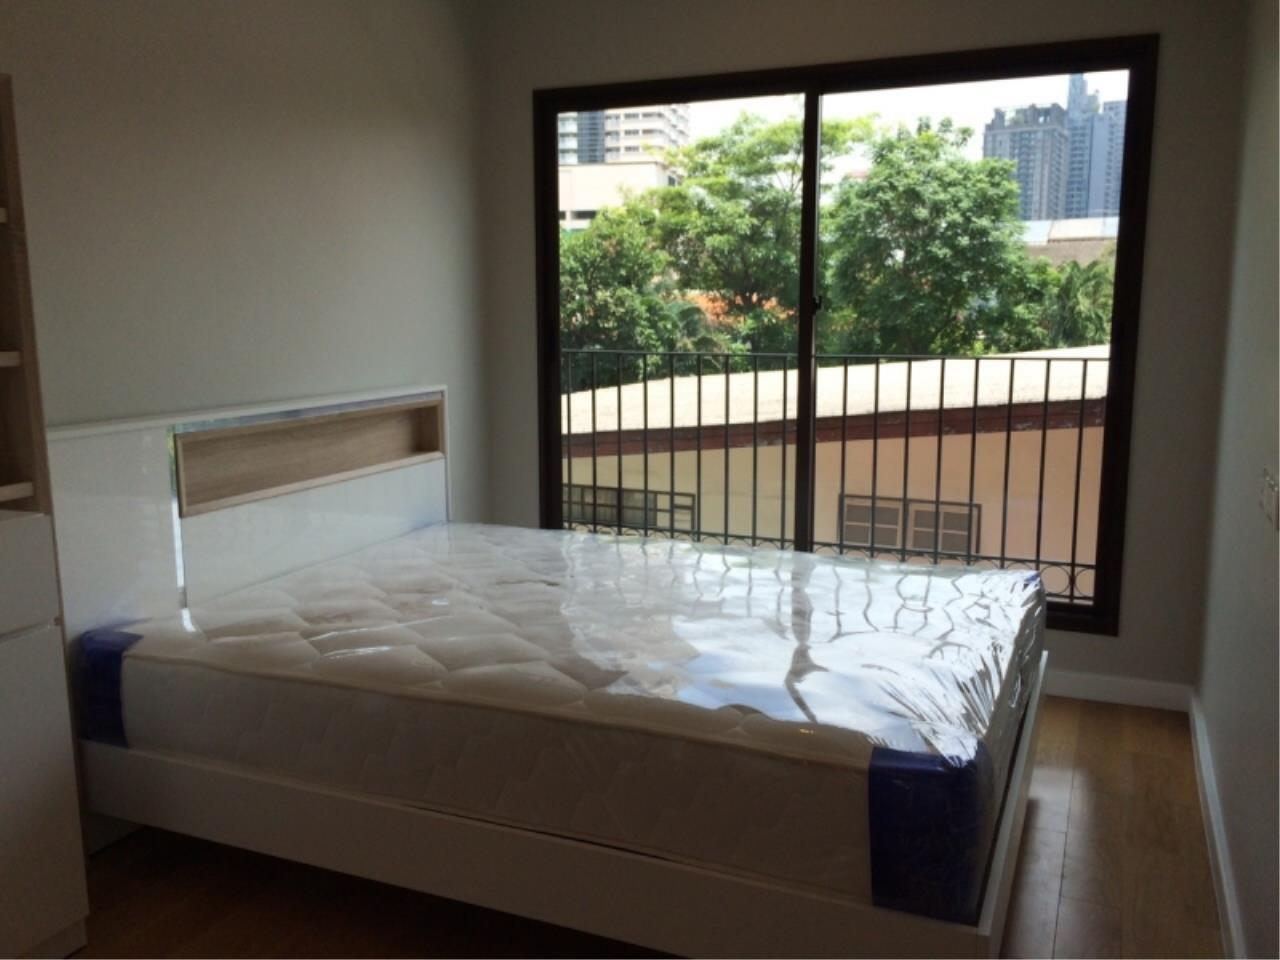 Century21 Skylux Agency's Condolette Dwell Sukhumvit 26 / Condo For Sale / 1 Bedroom / 34 SQM / BTS Phrom Phong / Bangkok 1